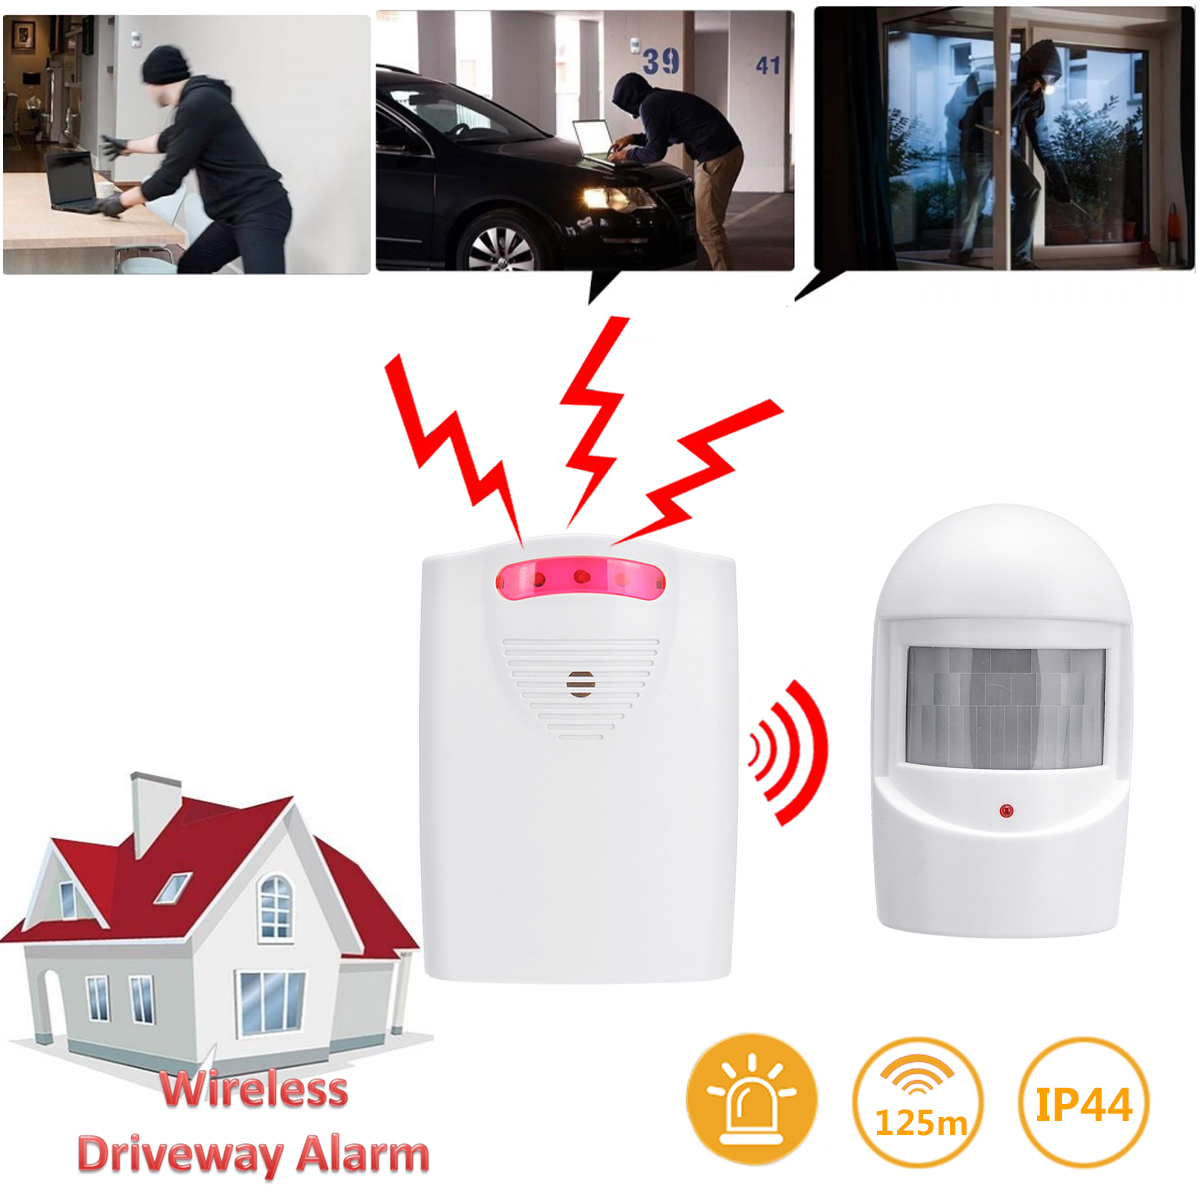 NEW Wireless Driveway Alarm Alert System Home Security Garage Shed PIR Motion Sensor